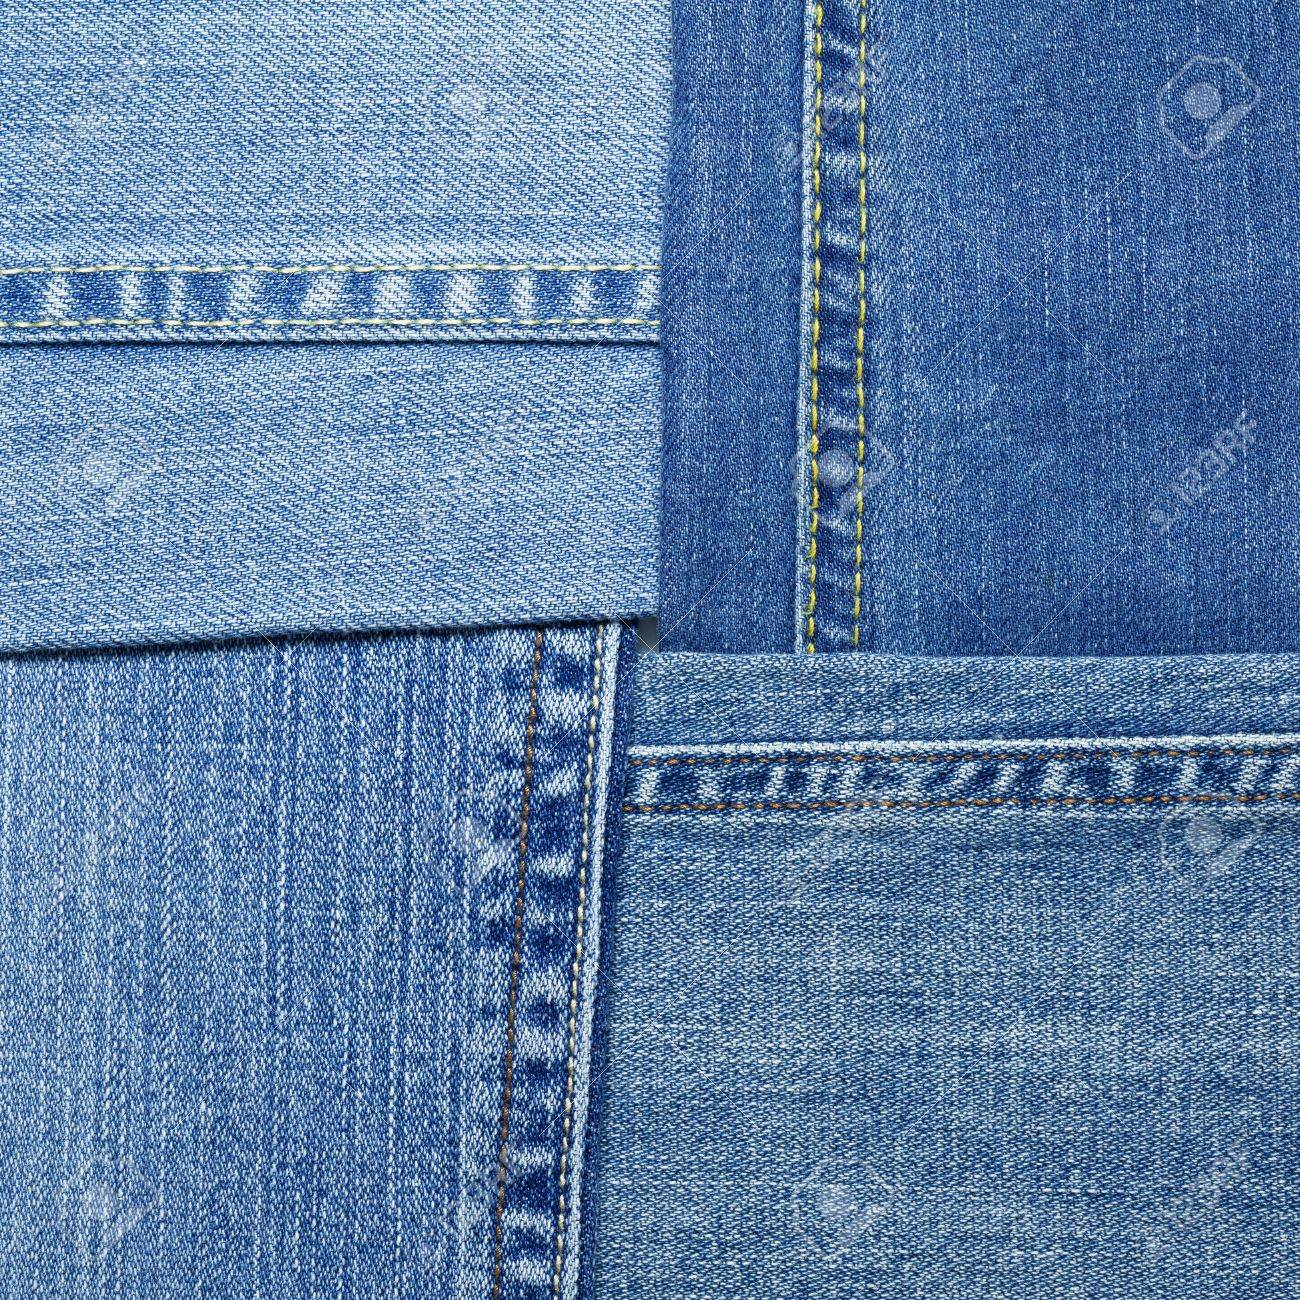 Blue Denim Jeans Texture Background Stock Photo Picture And Royalty Free Image Image 15703469